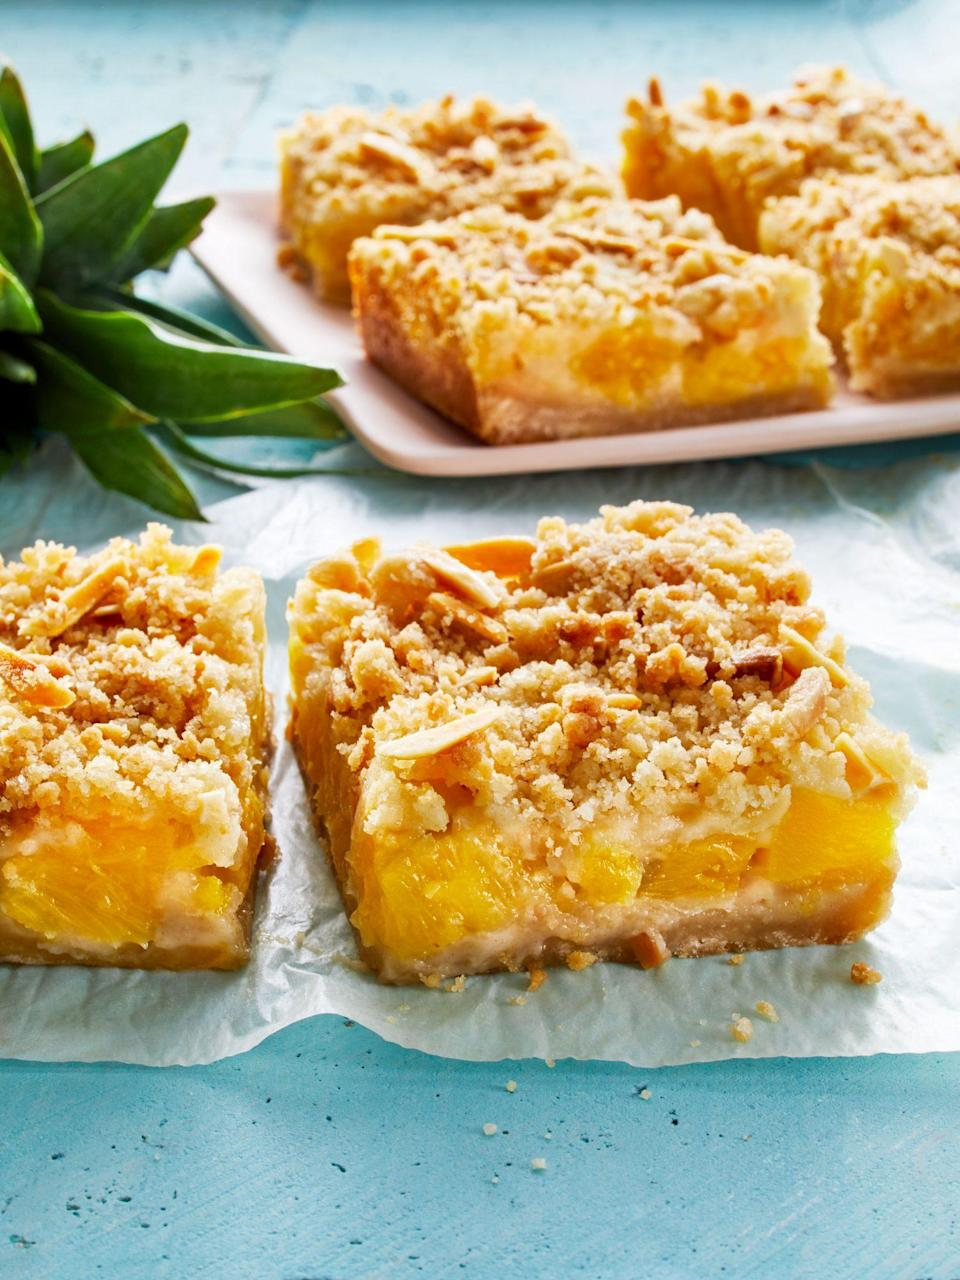 "<p><strong>Recipe: </strong><a href=""https://www.southernliving.com/recipes/buttery-pineapple-crumble-bars"" rel=""nofollow noopener"" target=""_blank"" data-ylk=""slk:Buttery Pineapple Crumble Bars"" class=""link rapid-noclick-resp""><strong>Buttery Pineapple Crumble Bars</strong></a></p> <p>Our readers who love to bake had so much fun with these sweet bars that use sweet pineapple and kitchen staples like flour, butter, and sugar. Bake a batch to make your neighbor's day! Readers even adapted this recipe with peaches, blueberries, and mangoes.</p>"